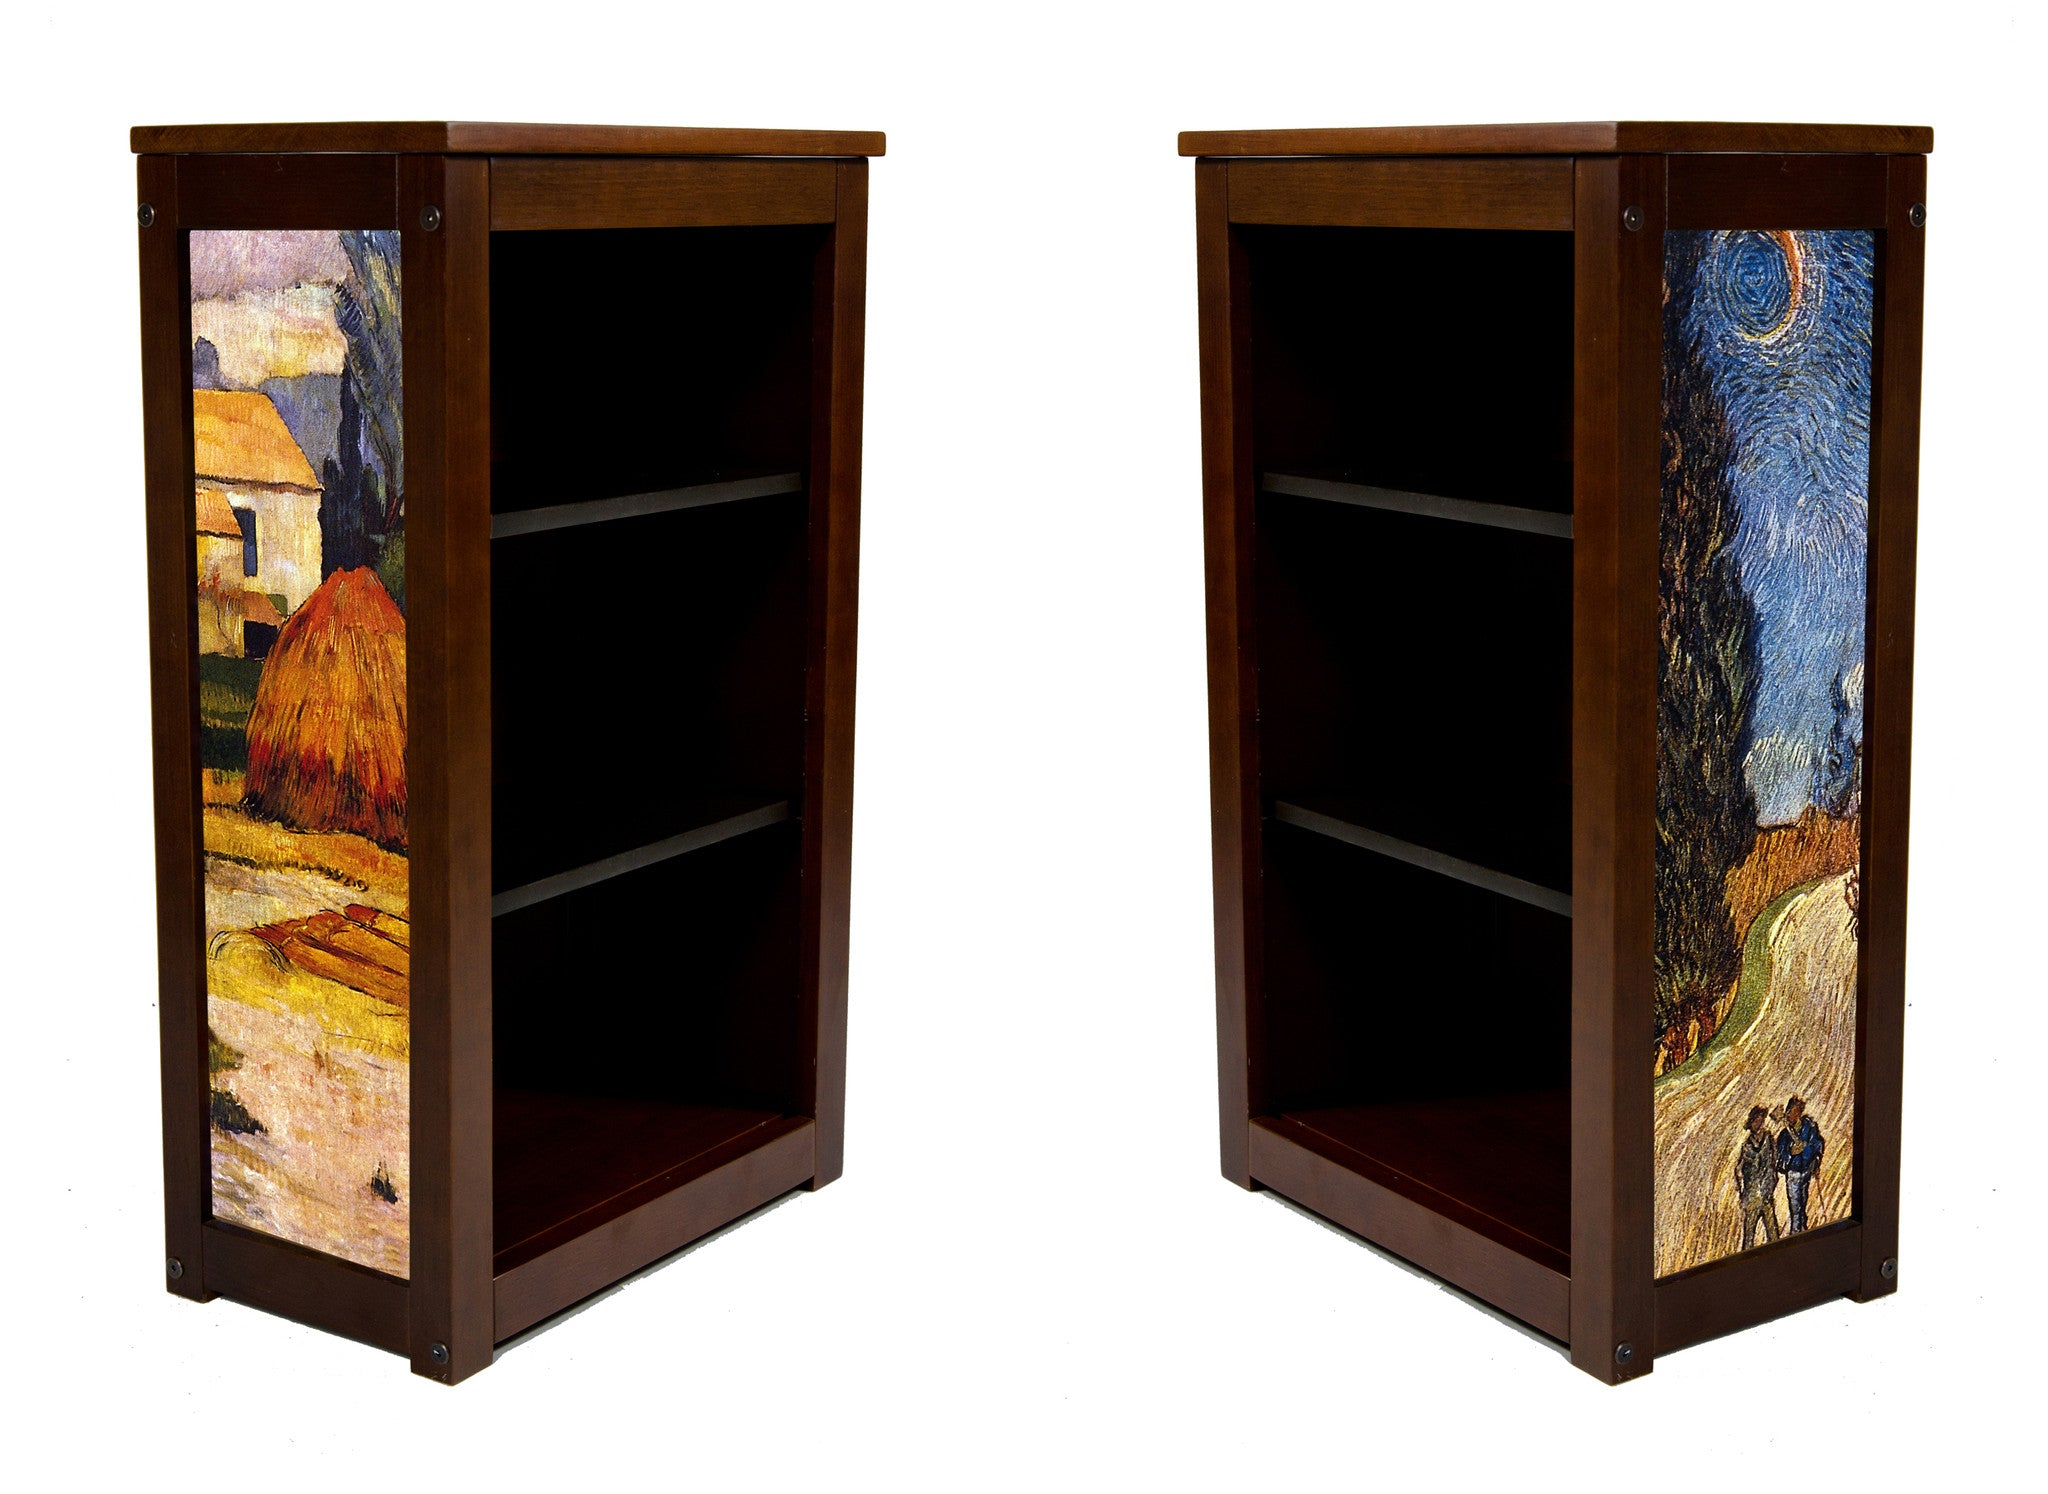 Book Cabinet with Arles and Cypress Road  by Gauguin and Van Gogh